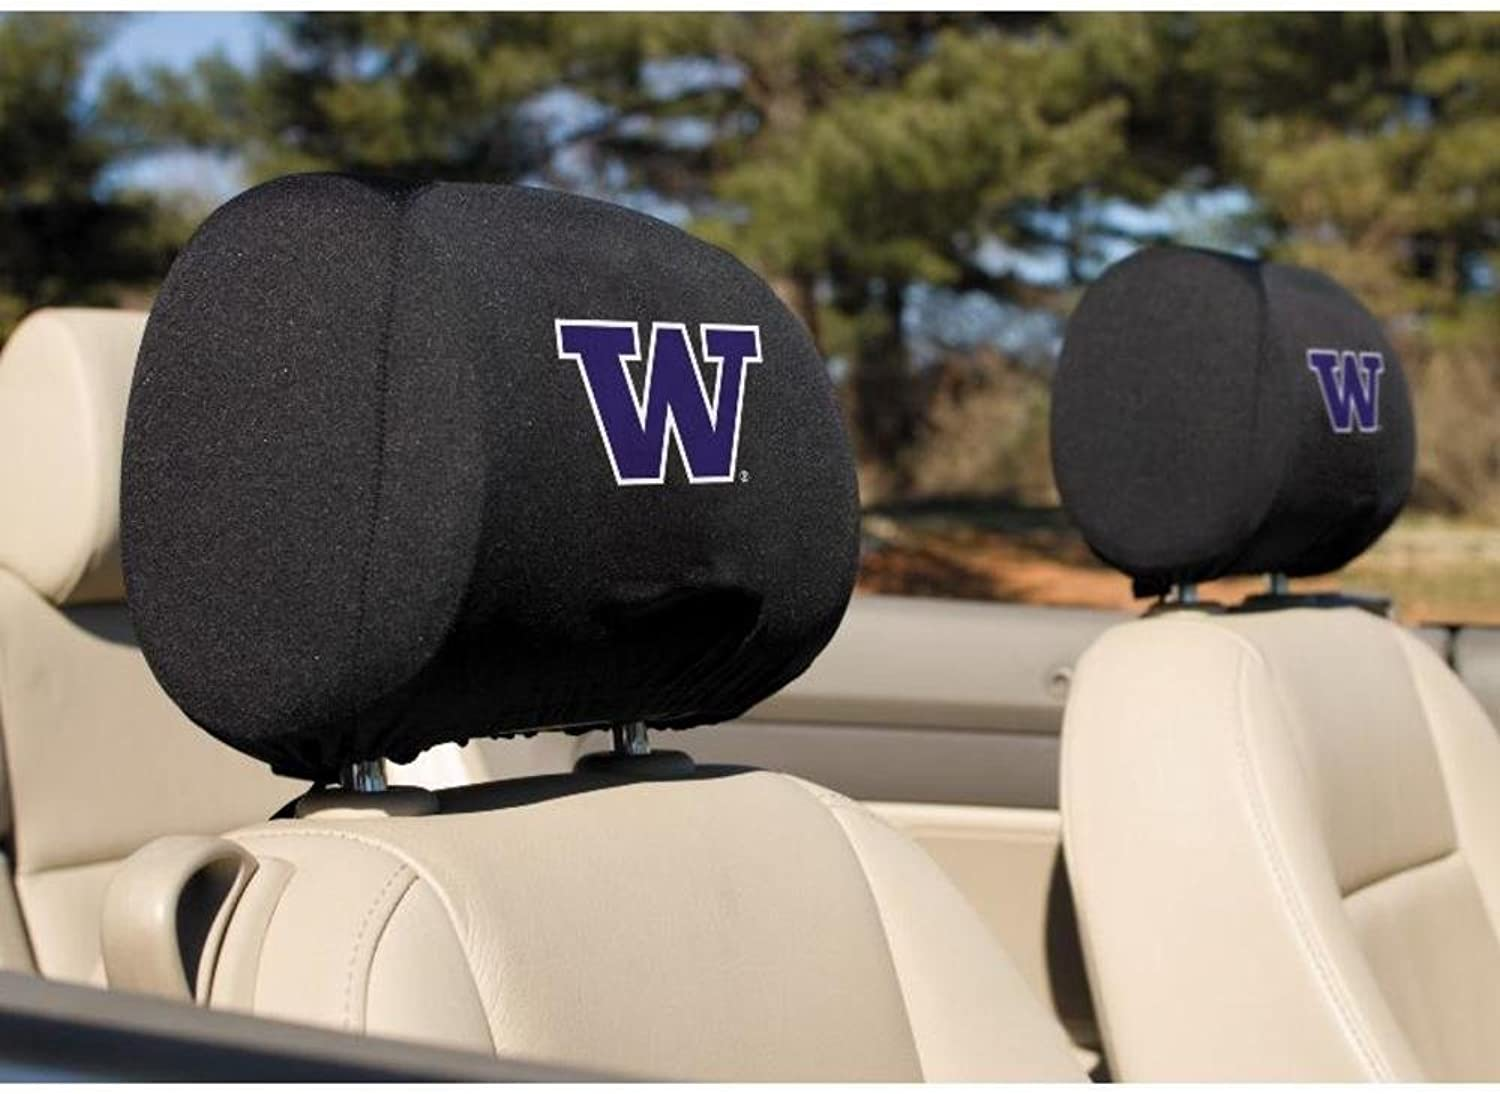 Bsi Products Collegiate Washington Headrest Covers  Set Of